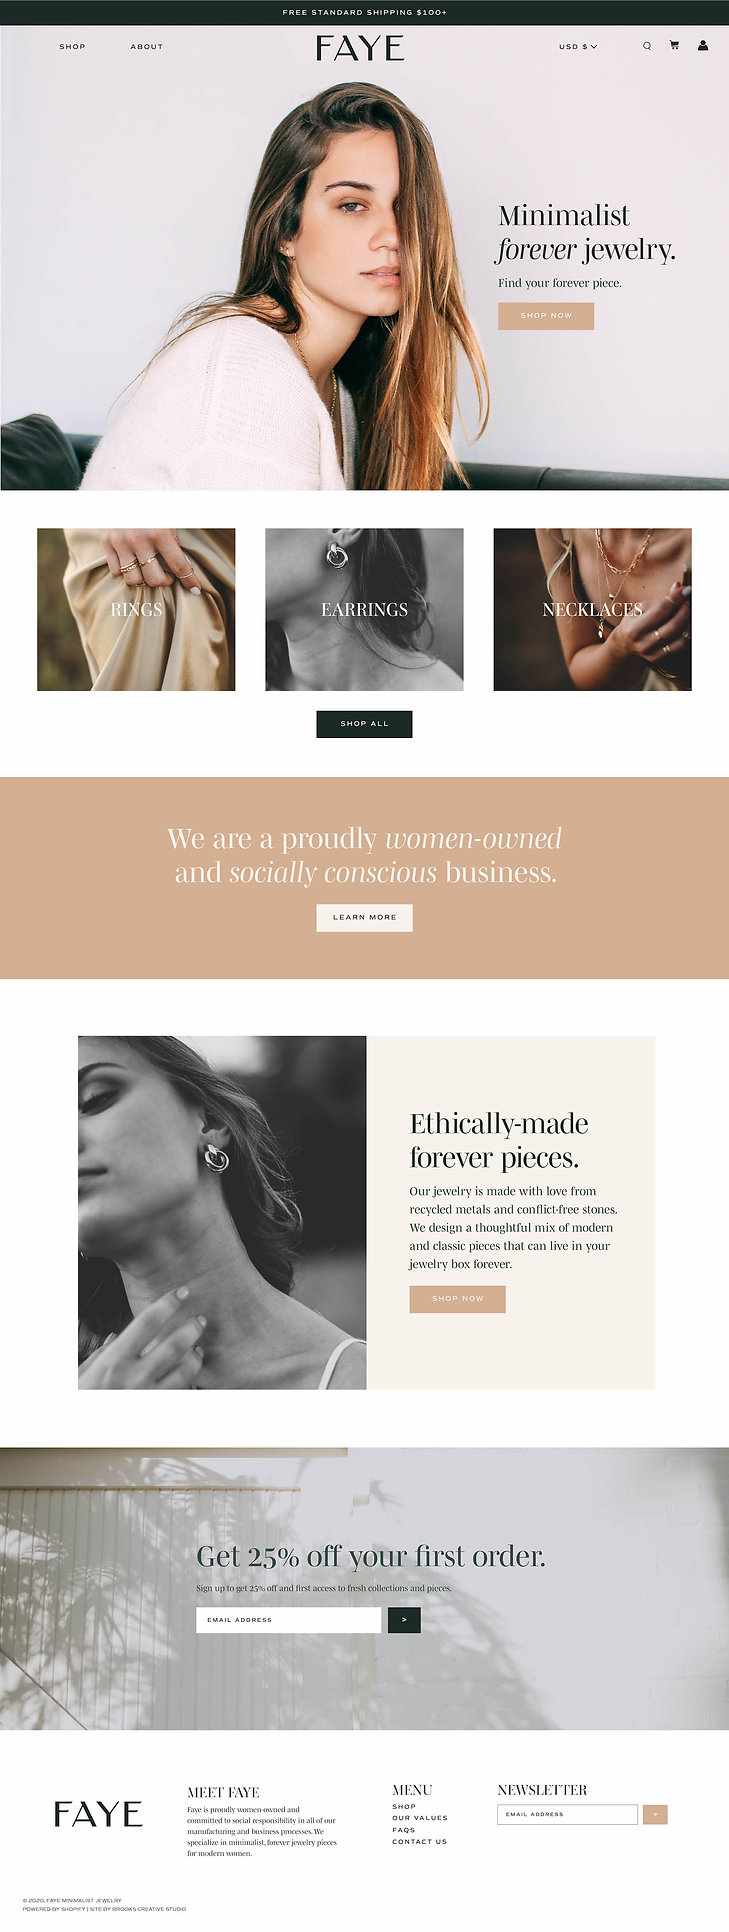 Shopify homepage design for jewelry brand